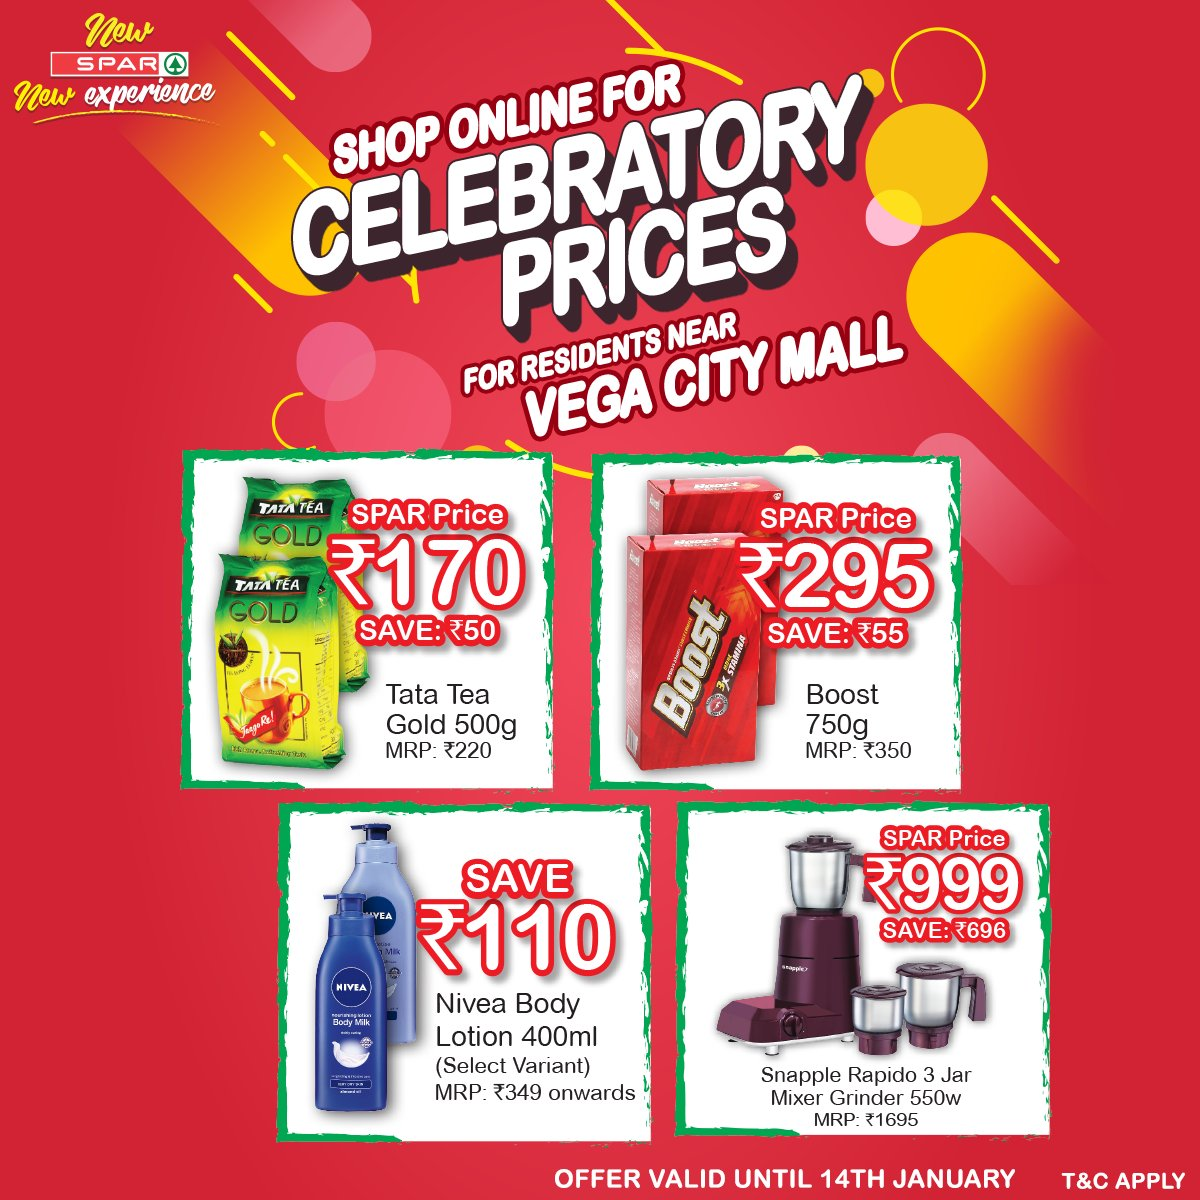 Uživatel Spar India Na Twitteru Hello Bangalore We Have Special Online Celebratory Deals For Lovely People Living Near Vegacity Mall Click To Shop Https T Co Jlu7x6p6di Sparvegacity Newsparnewexperience Onlineshopping Https T Co